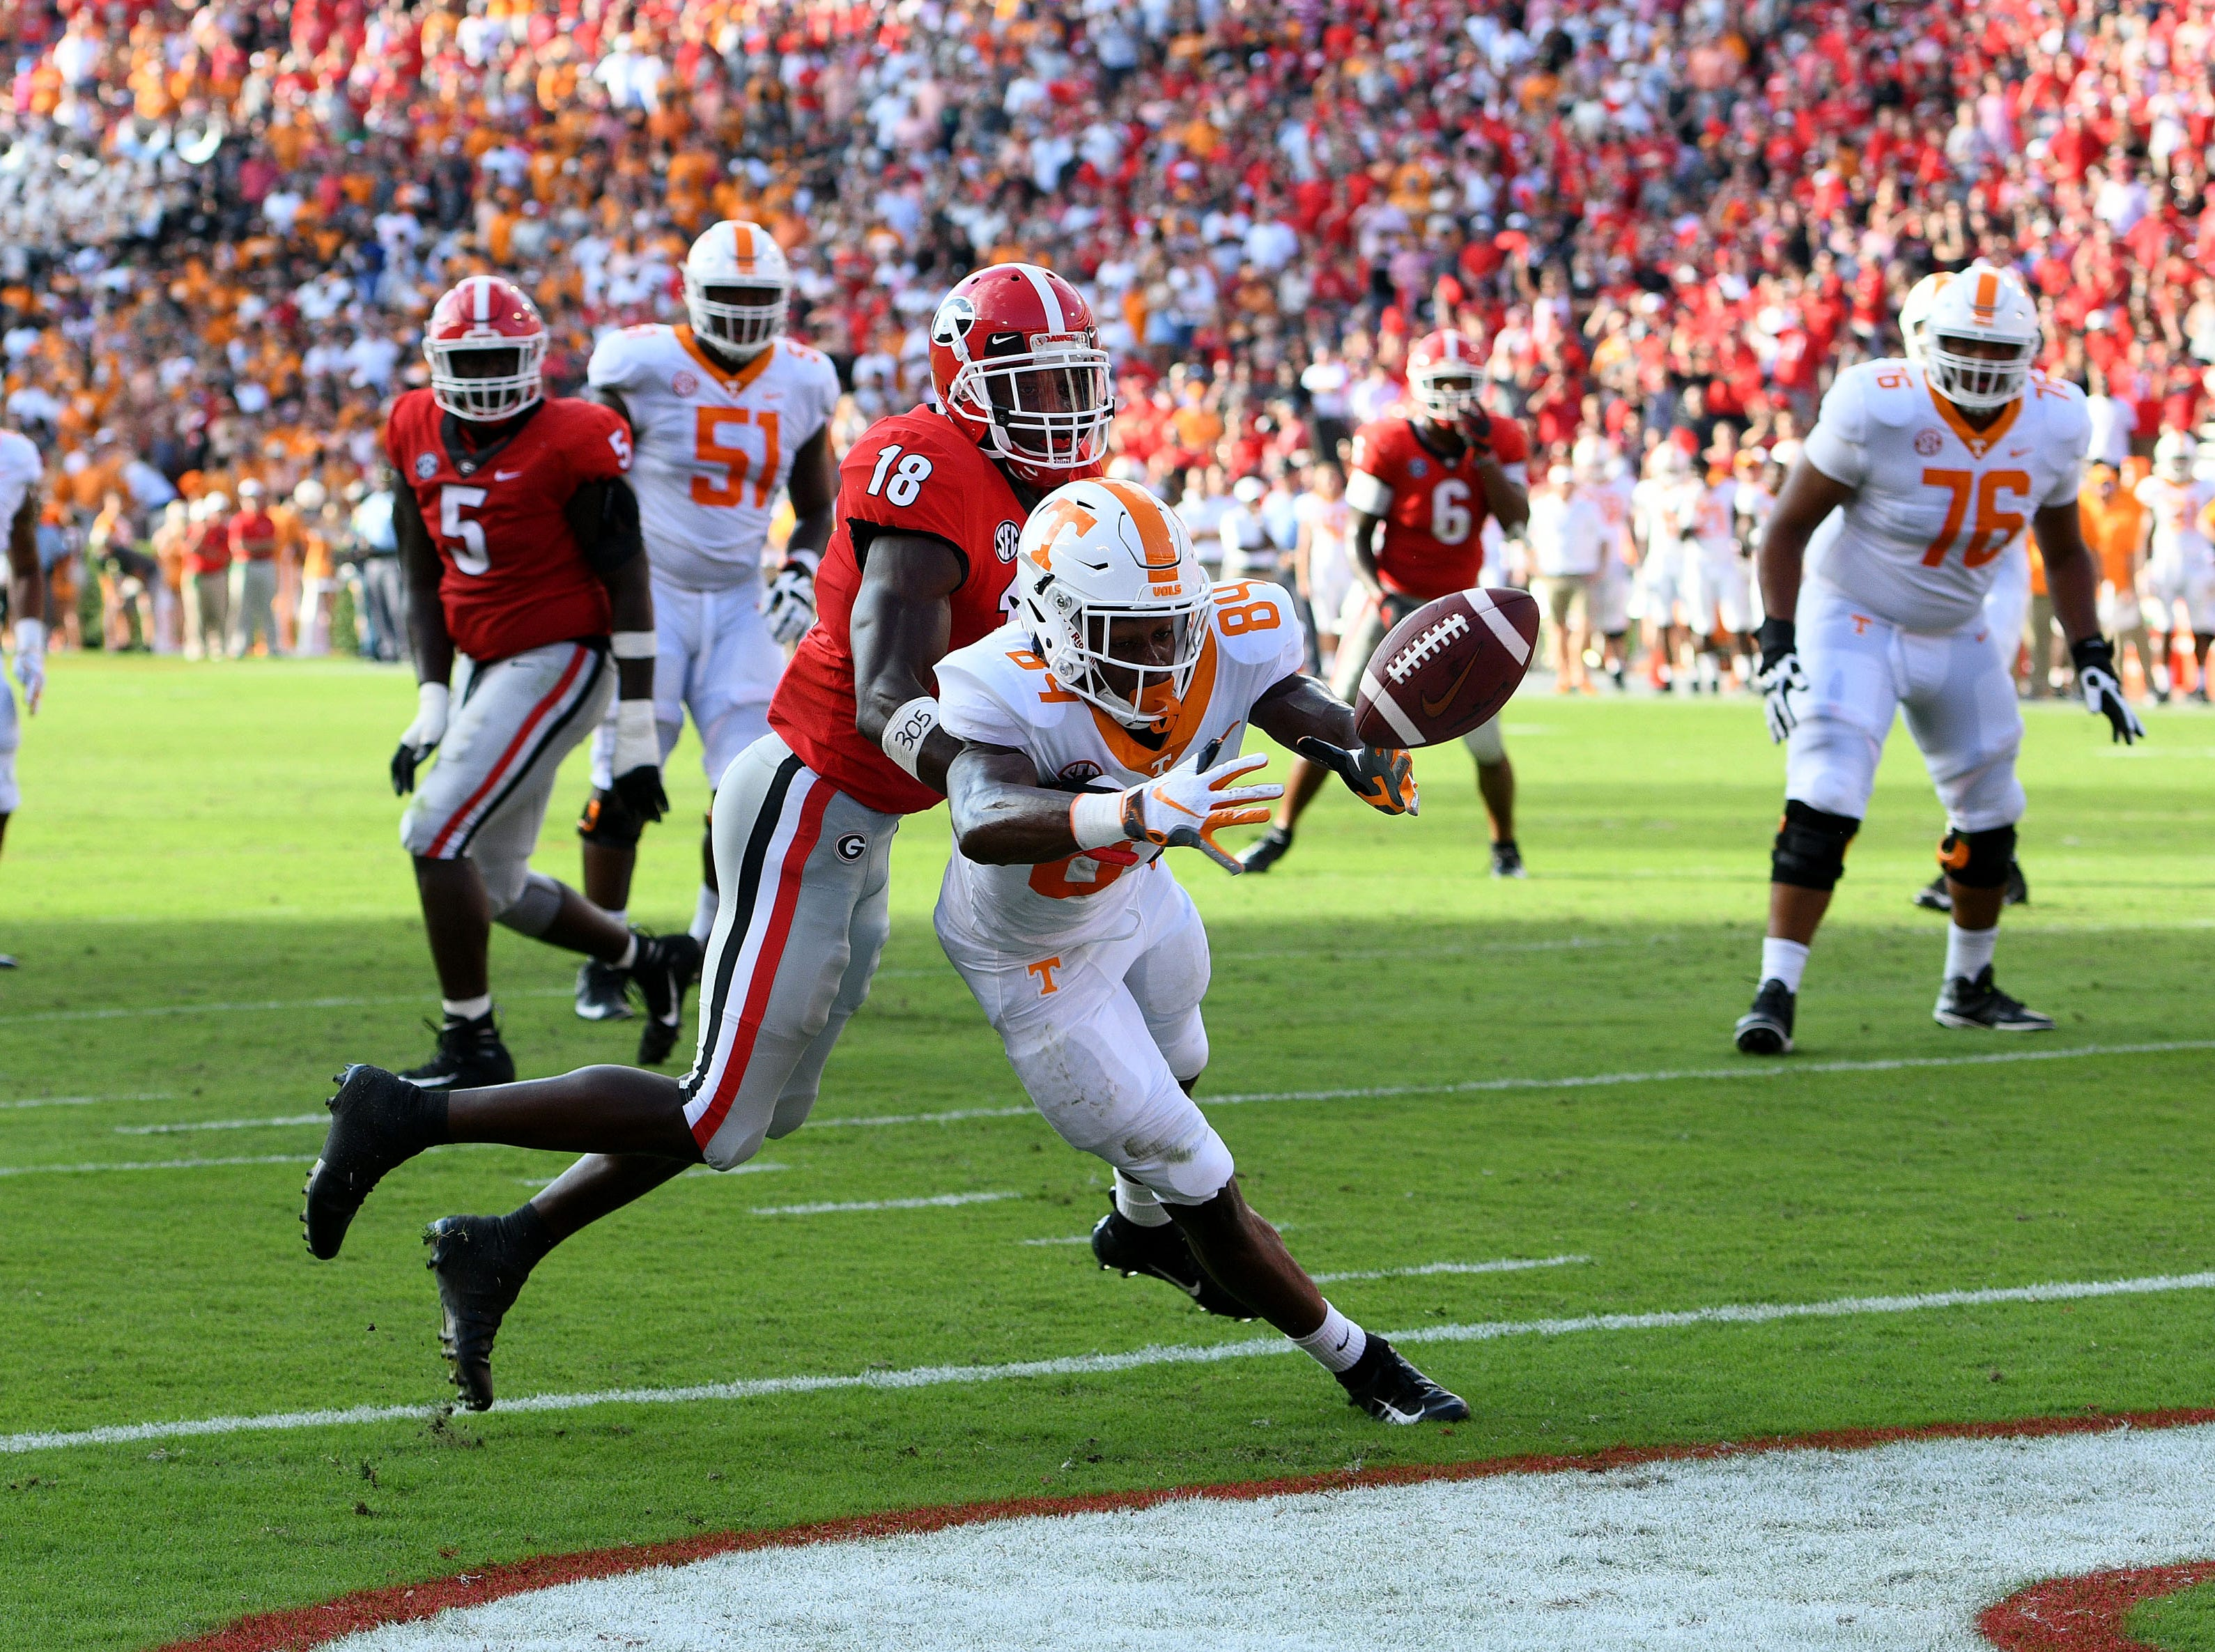 Tennessee wide receiver Josh Palmer (84) misses a two point conversion during second half action against Georgia Saturday, September 29, 2018 at Sanford Stadium in Athens, GA.